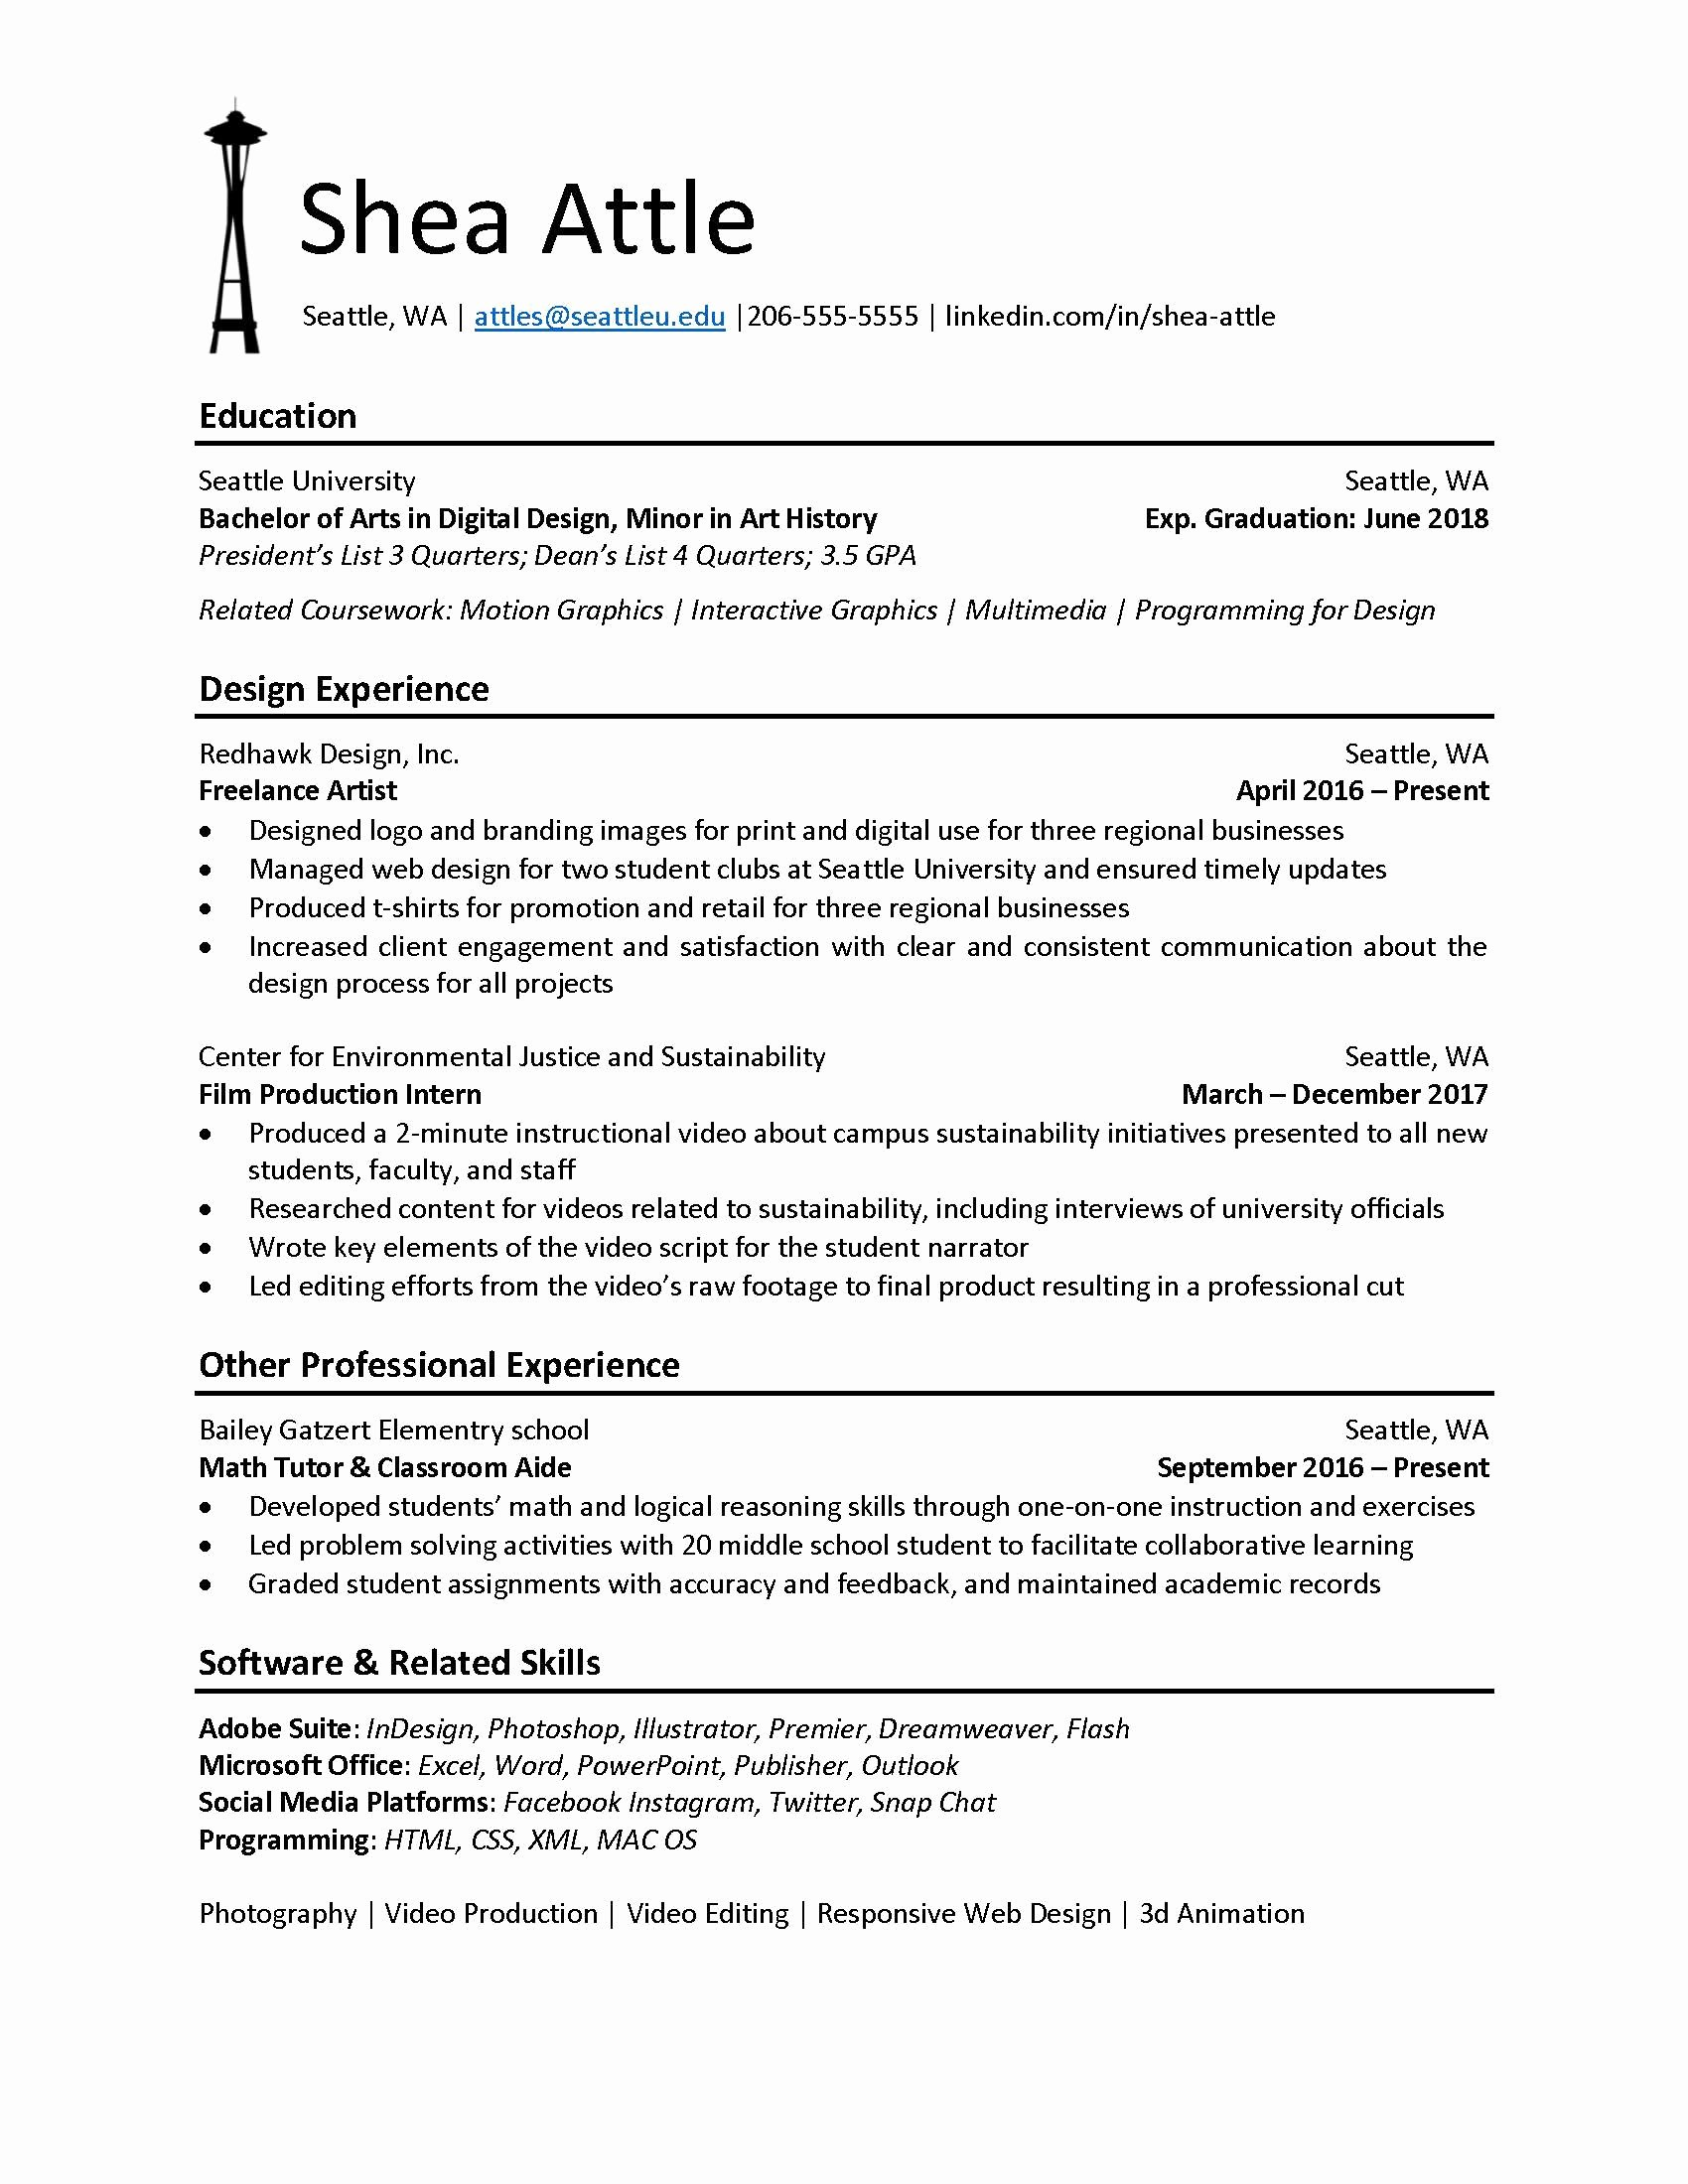 Resume after High School Luxury 10 How Do You List Education On A Resume